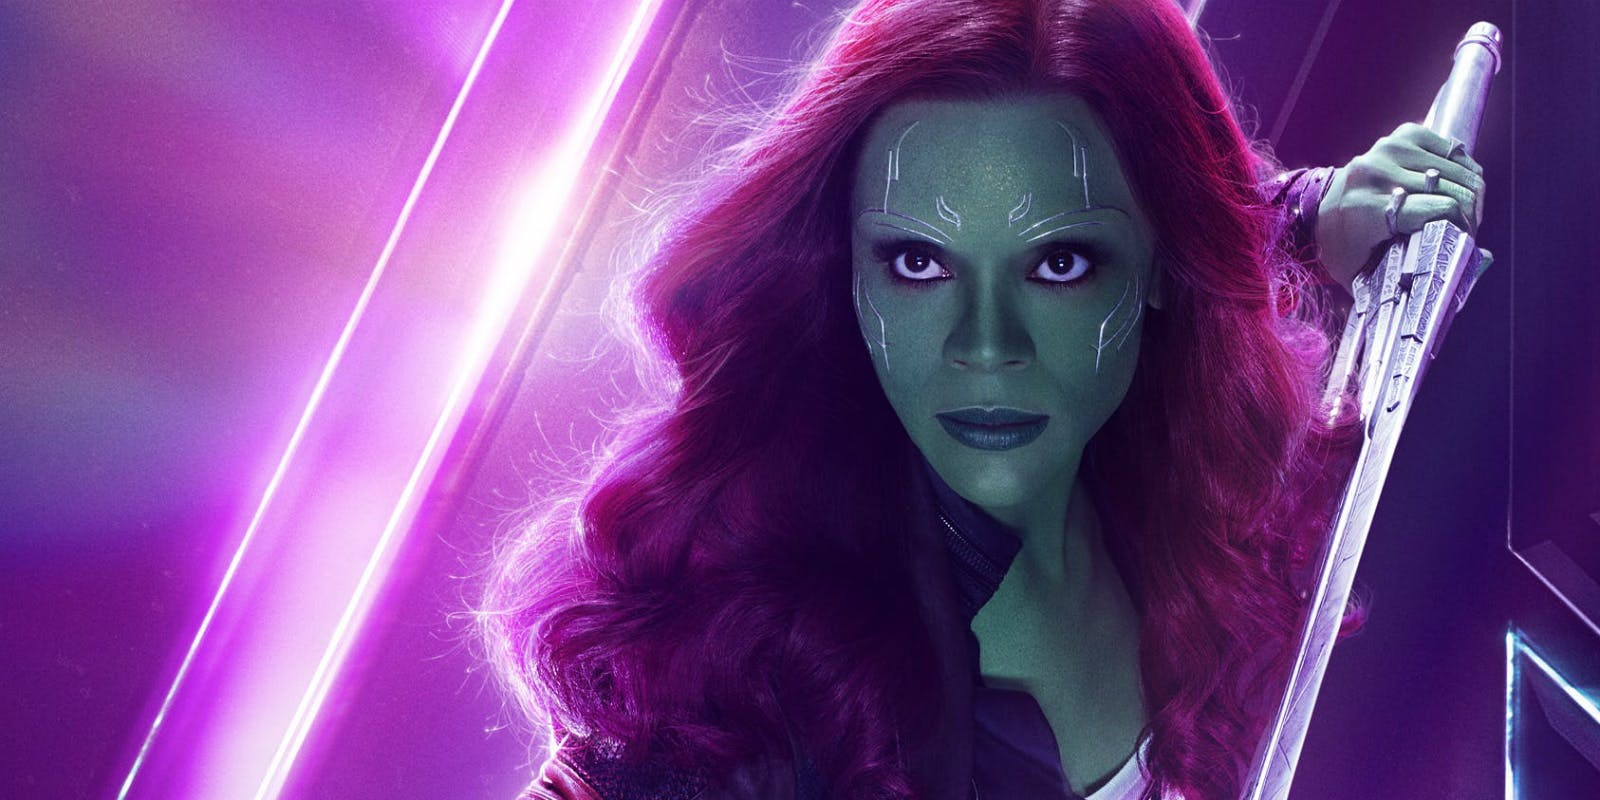 gamora story lost avengers infinity war